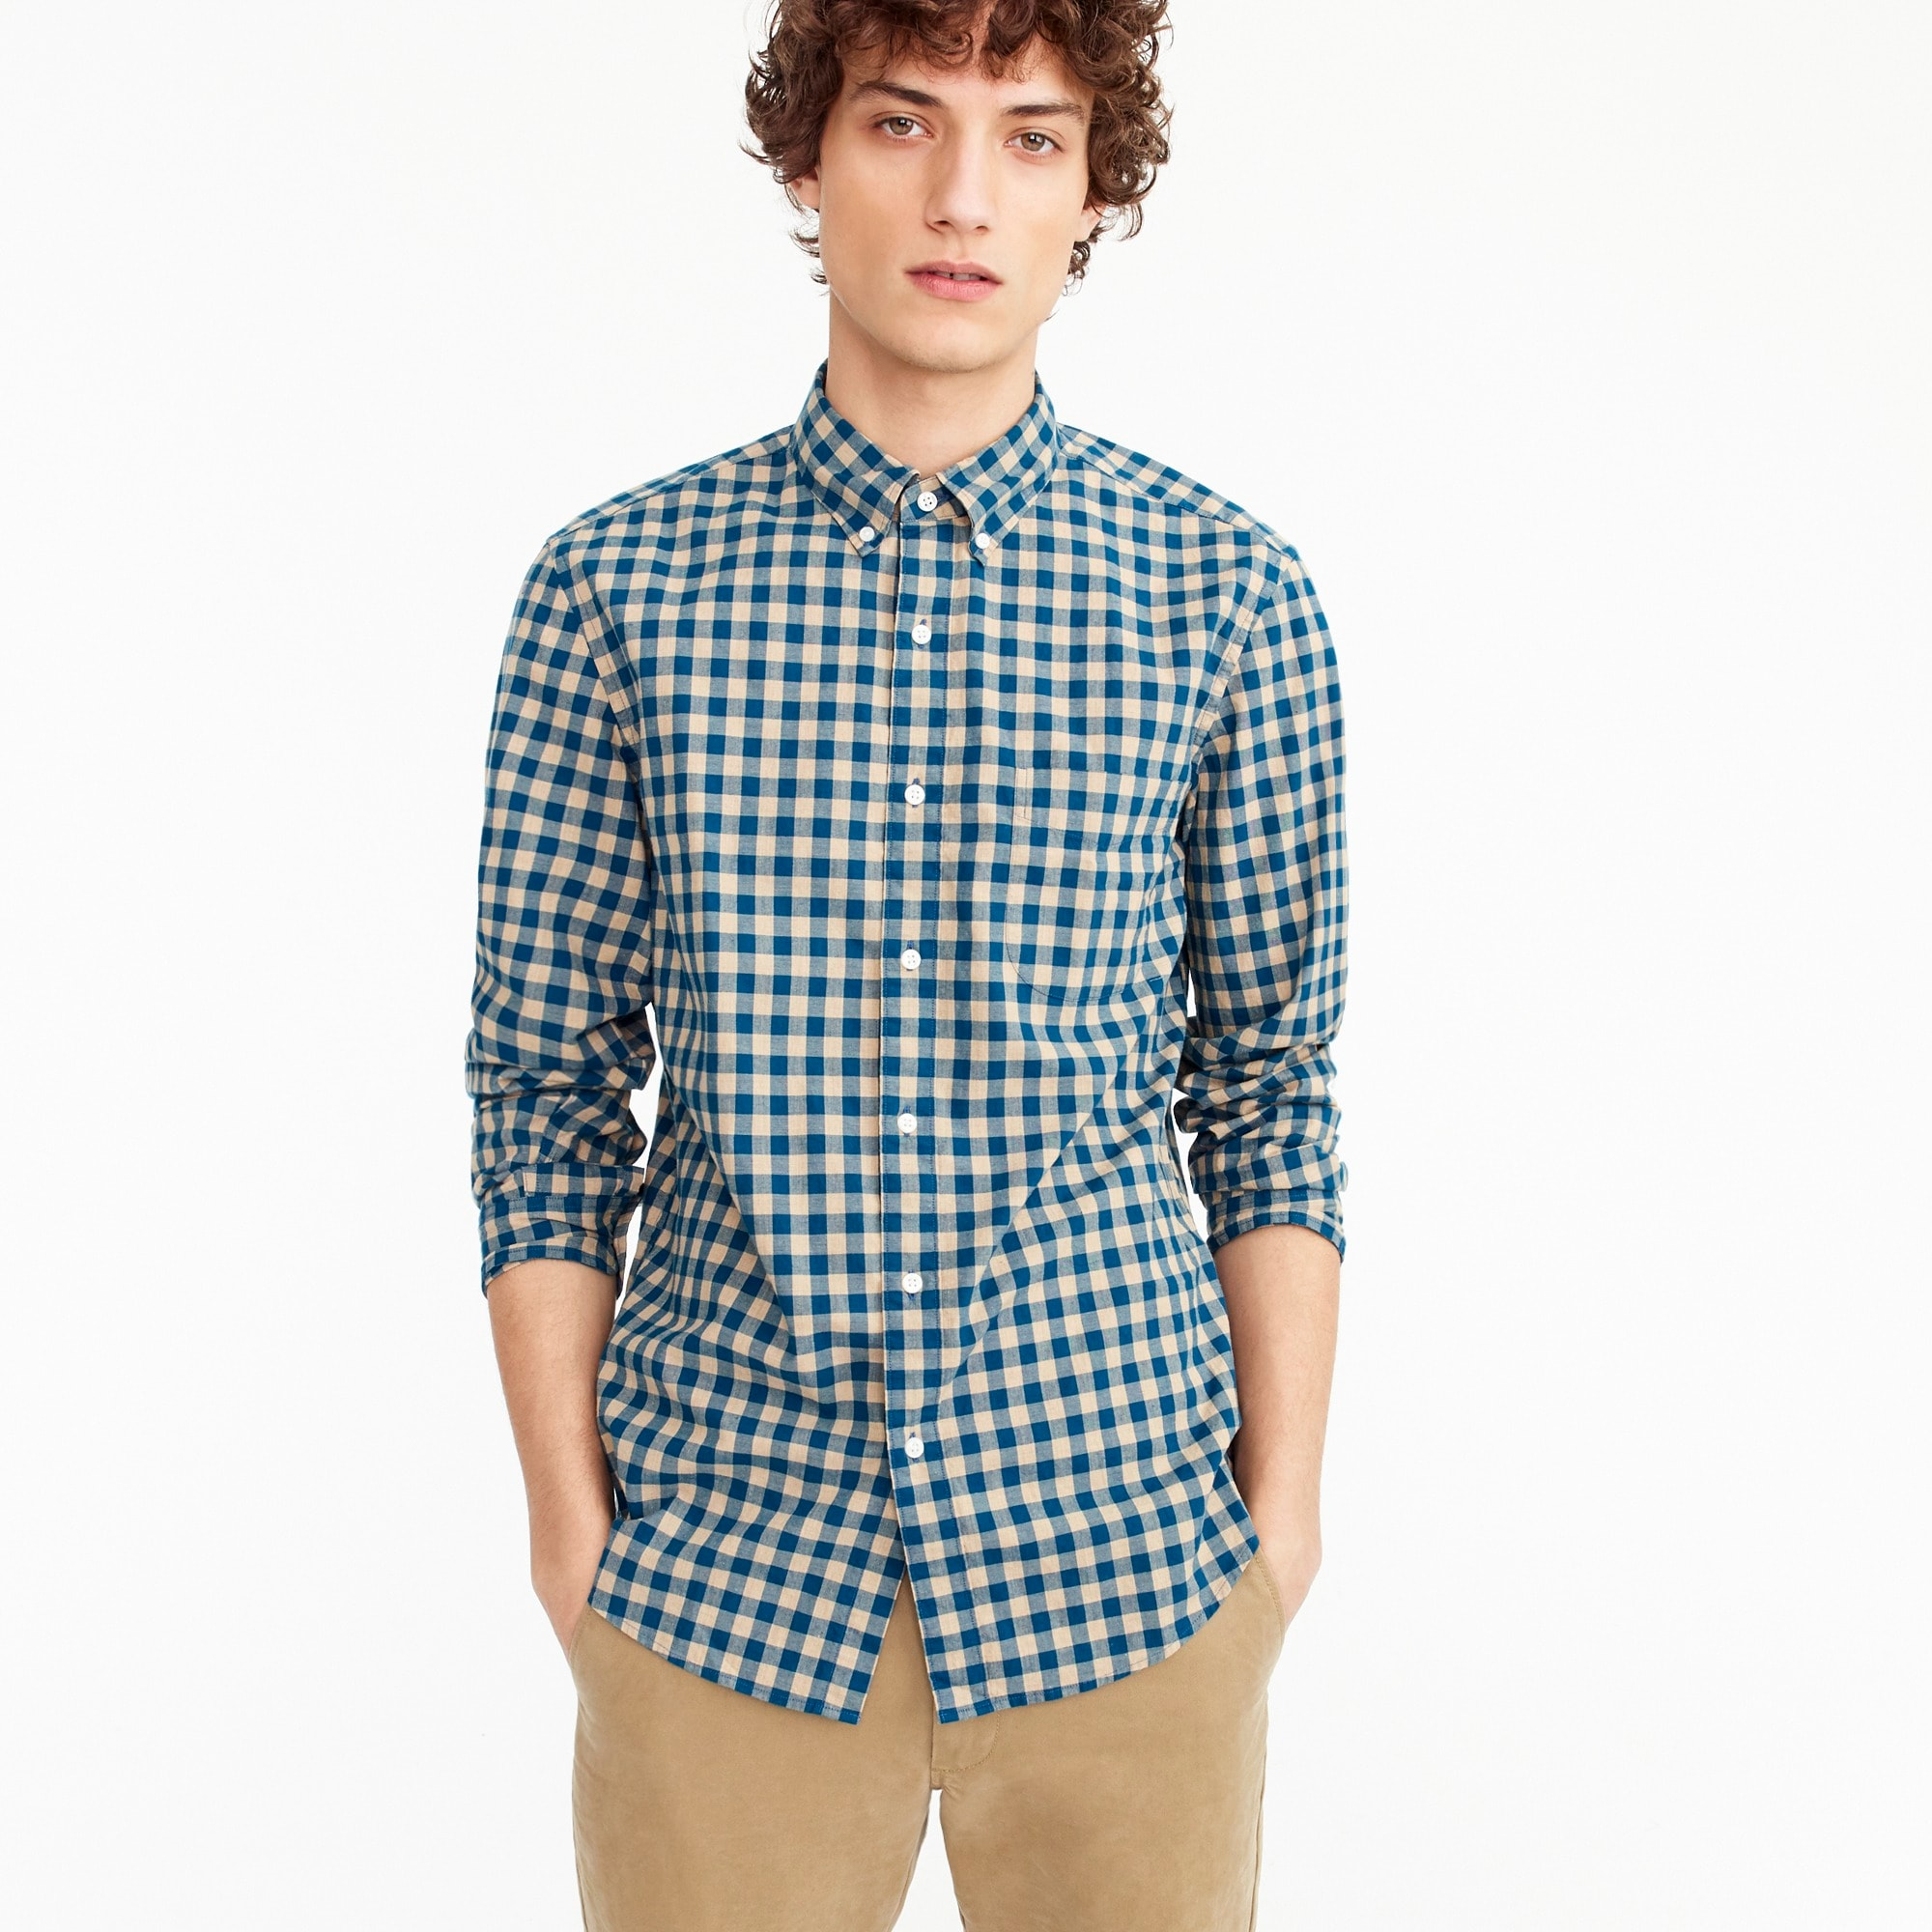 Stretch Secret Wash shirt in heather poplin gingham men new arrivals c